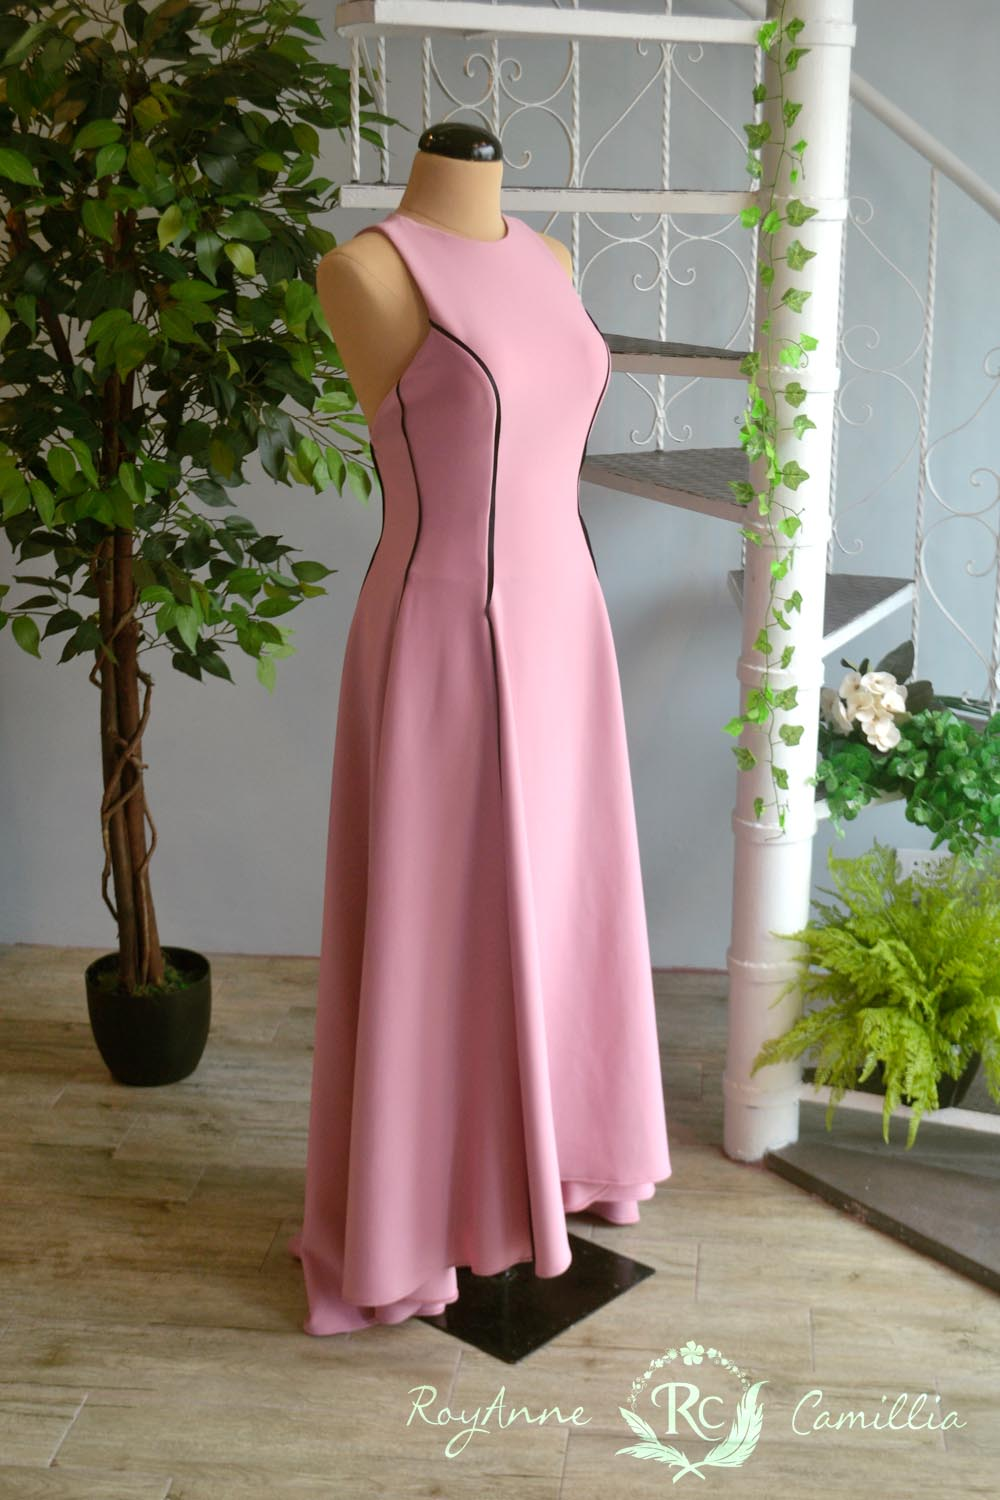 Old Fashioned Gown Rentals In Manila Photos - Best Evening Gown ...